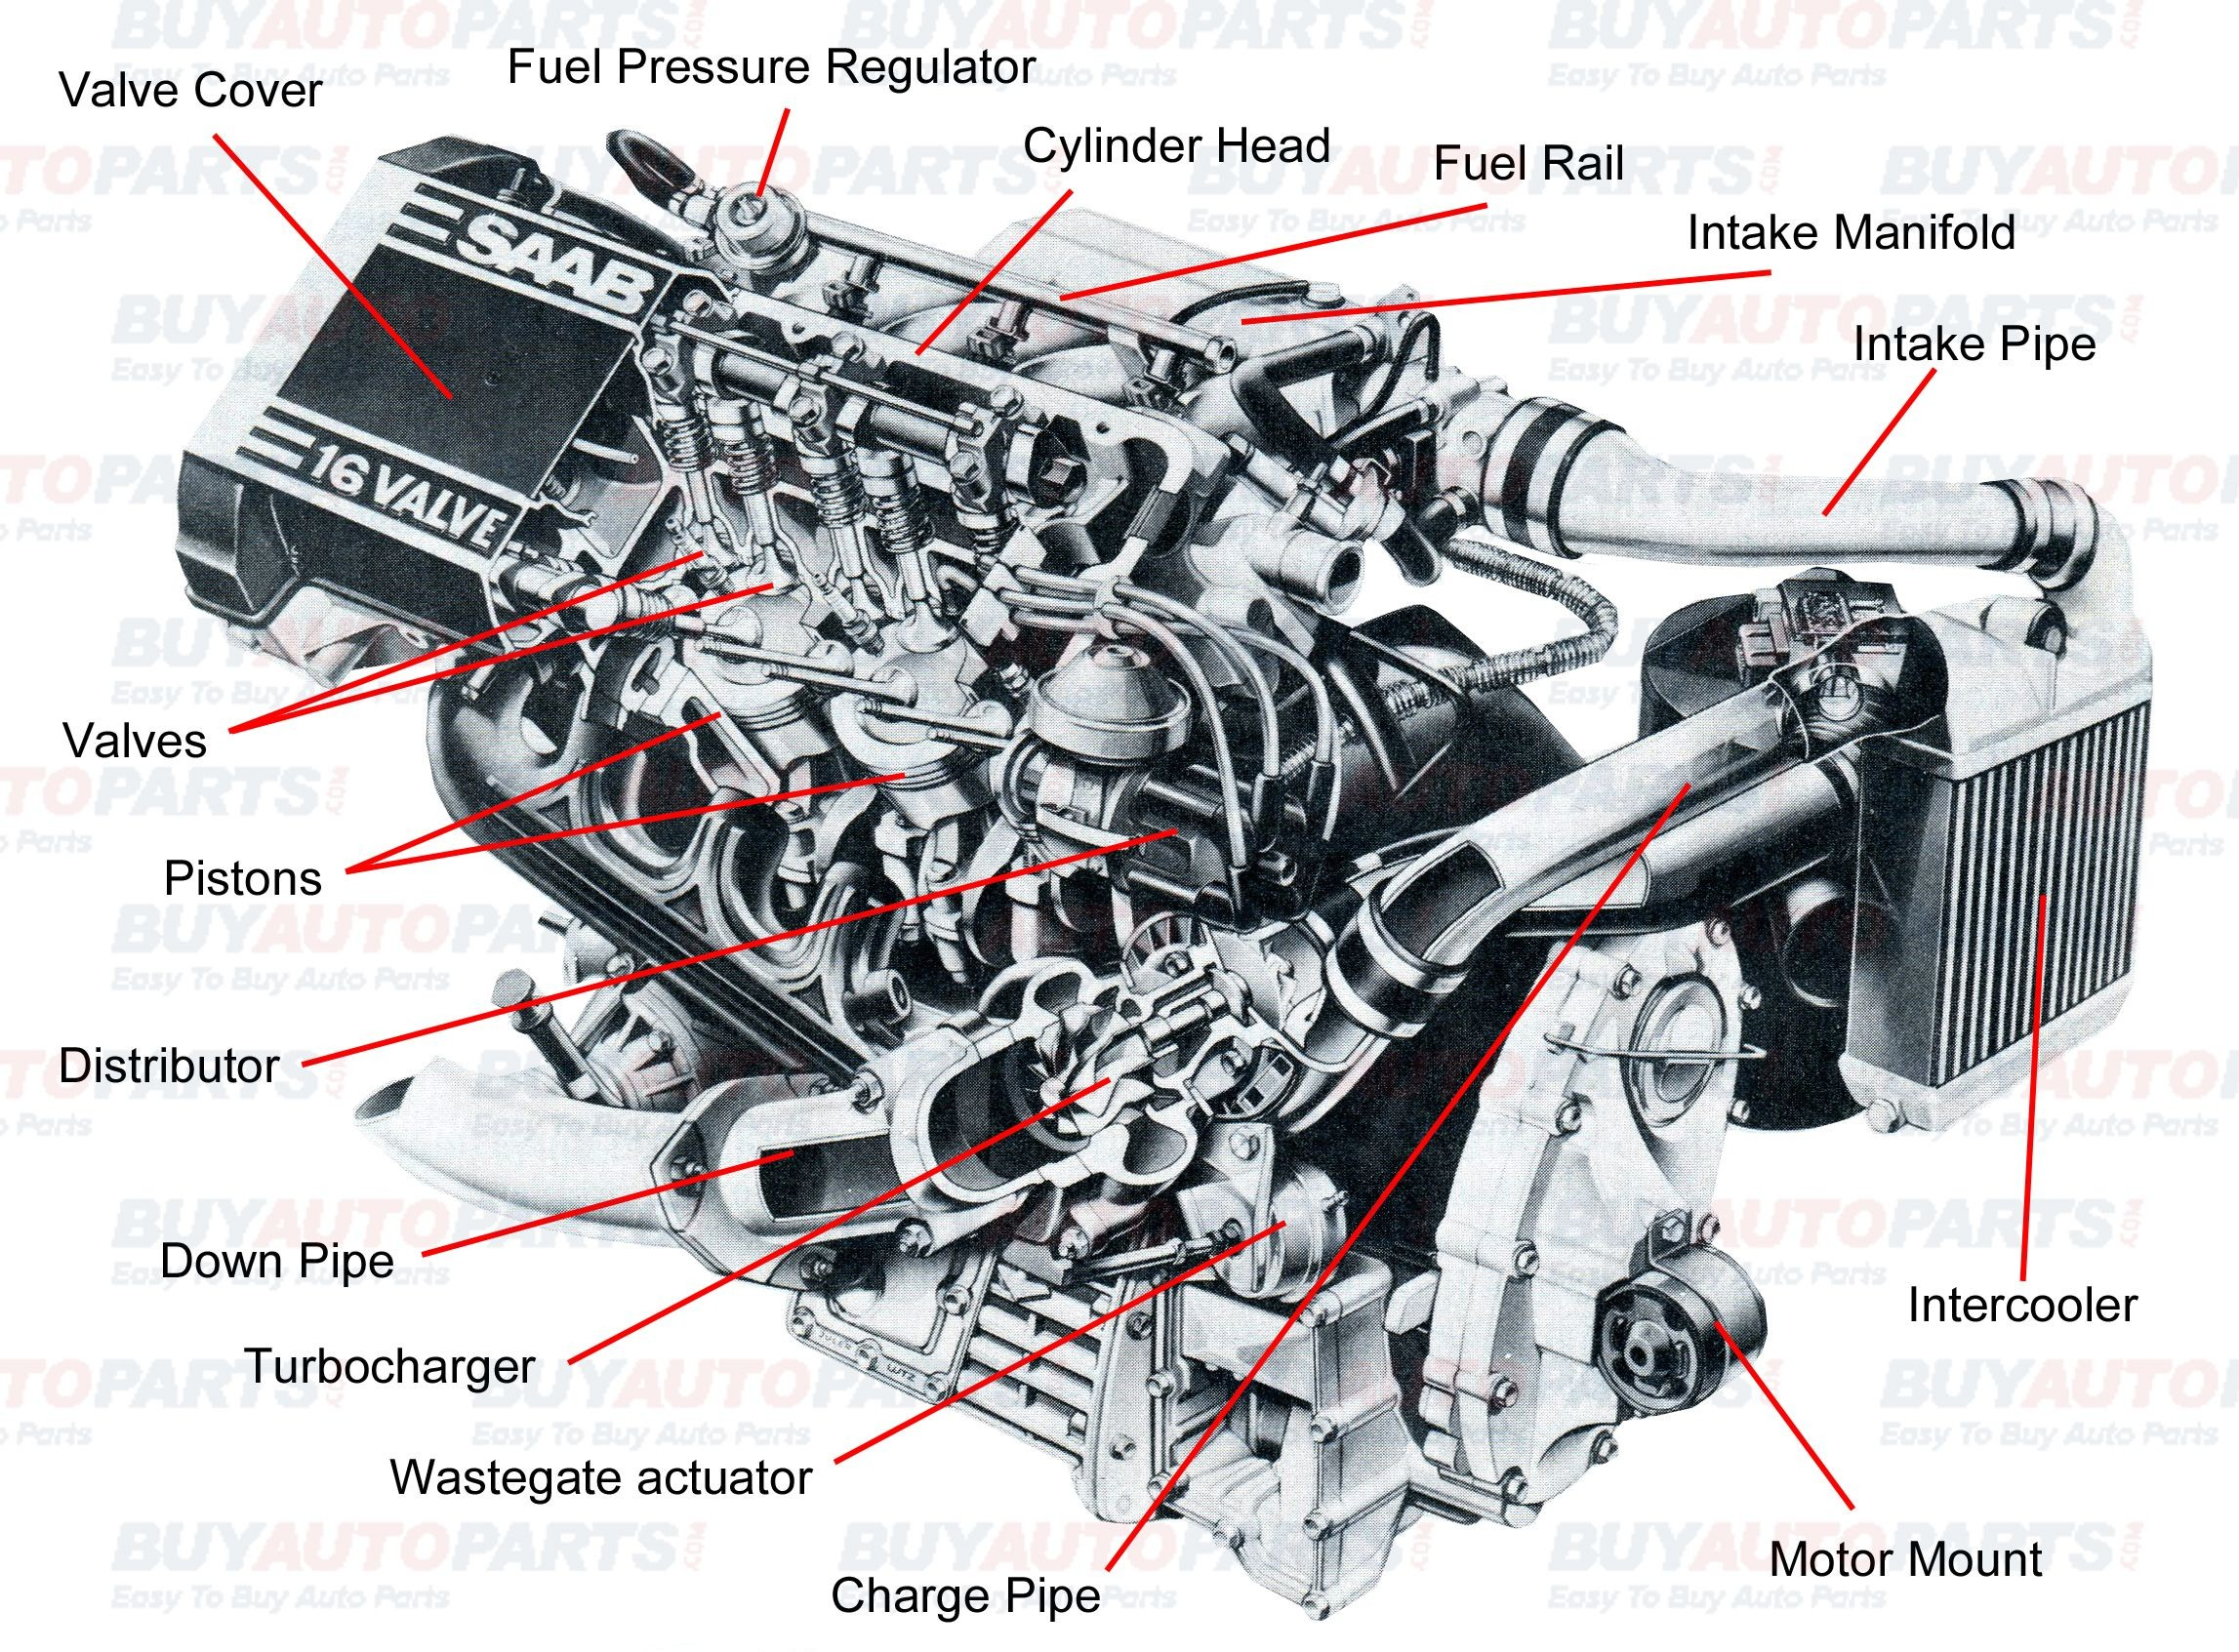 Diagram Of Car Components All Internal Bustion Engines Have the Same Basic Ponents the